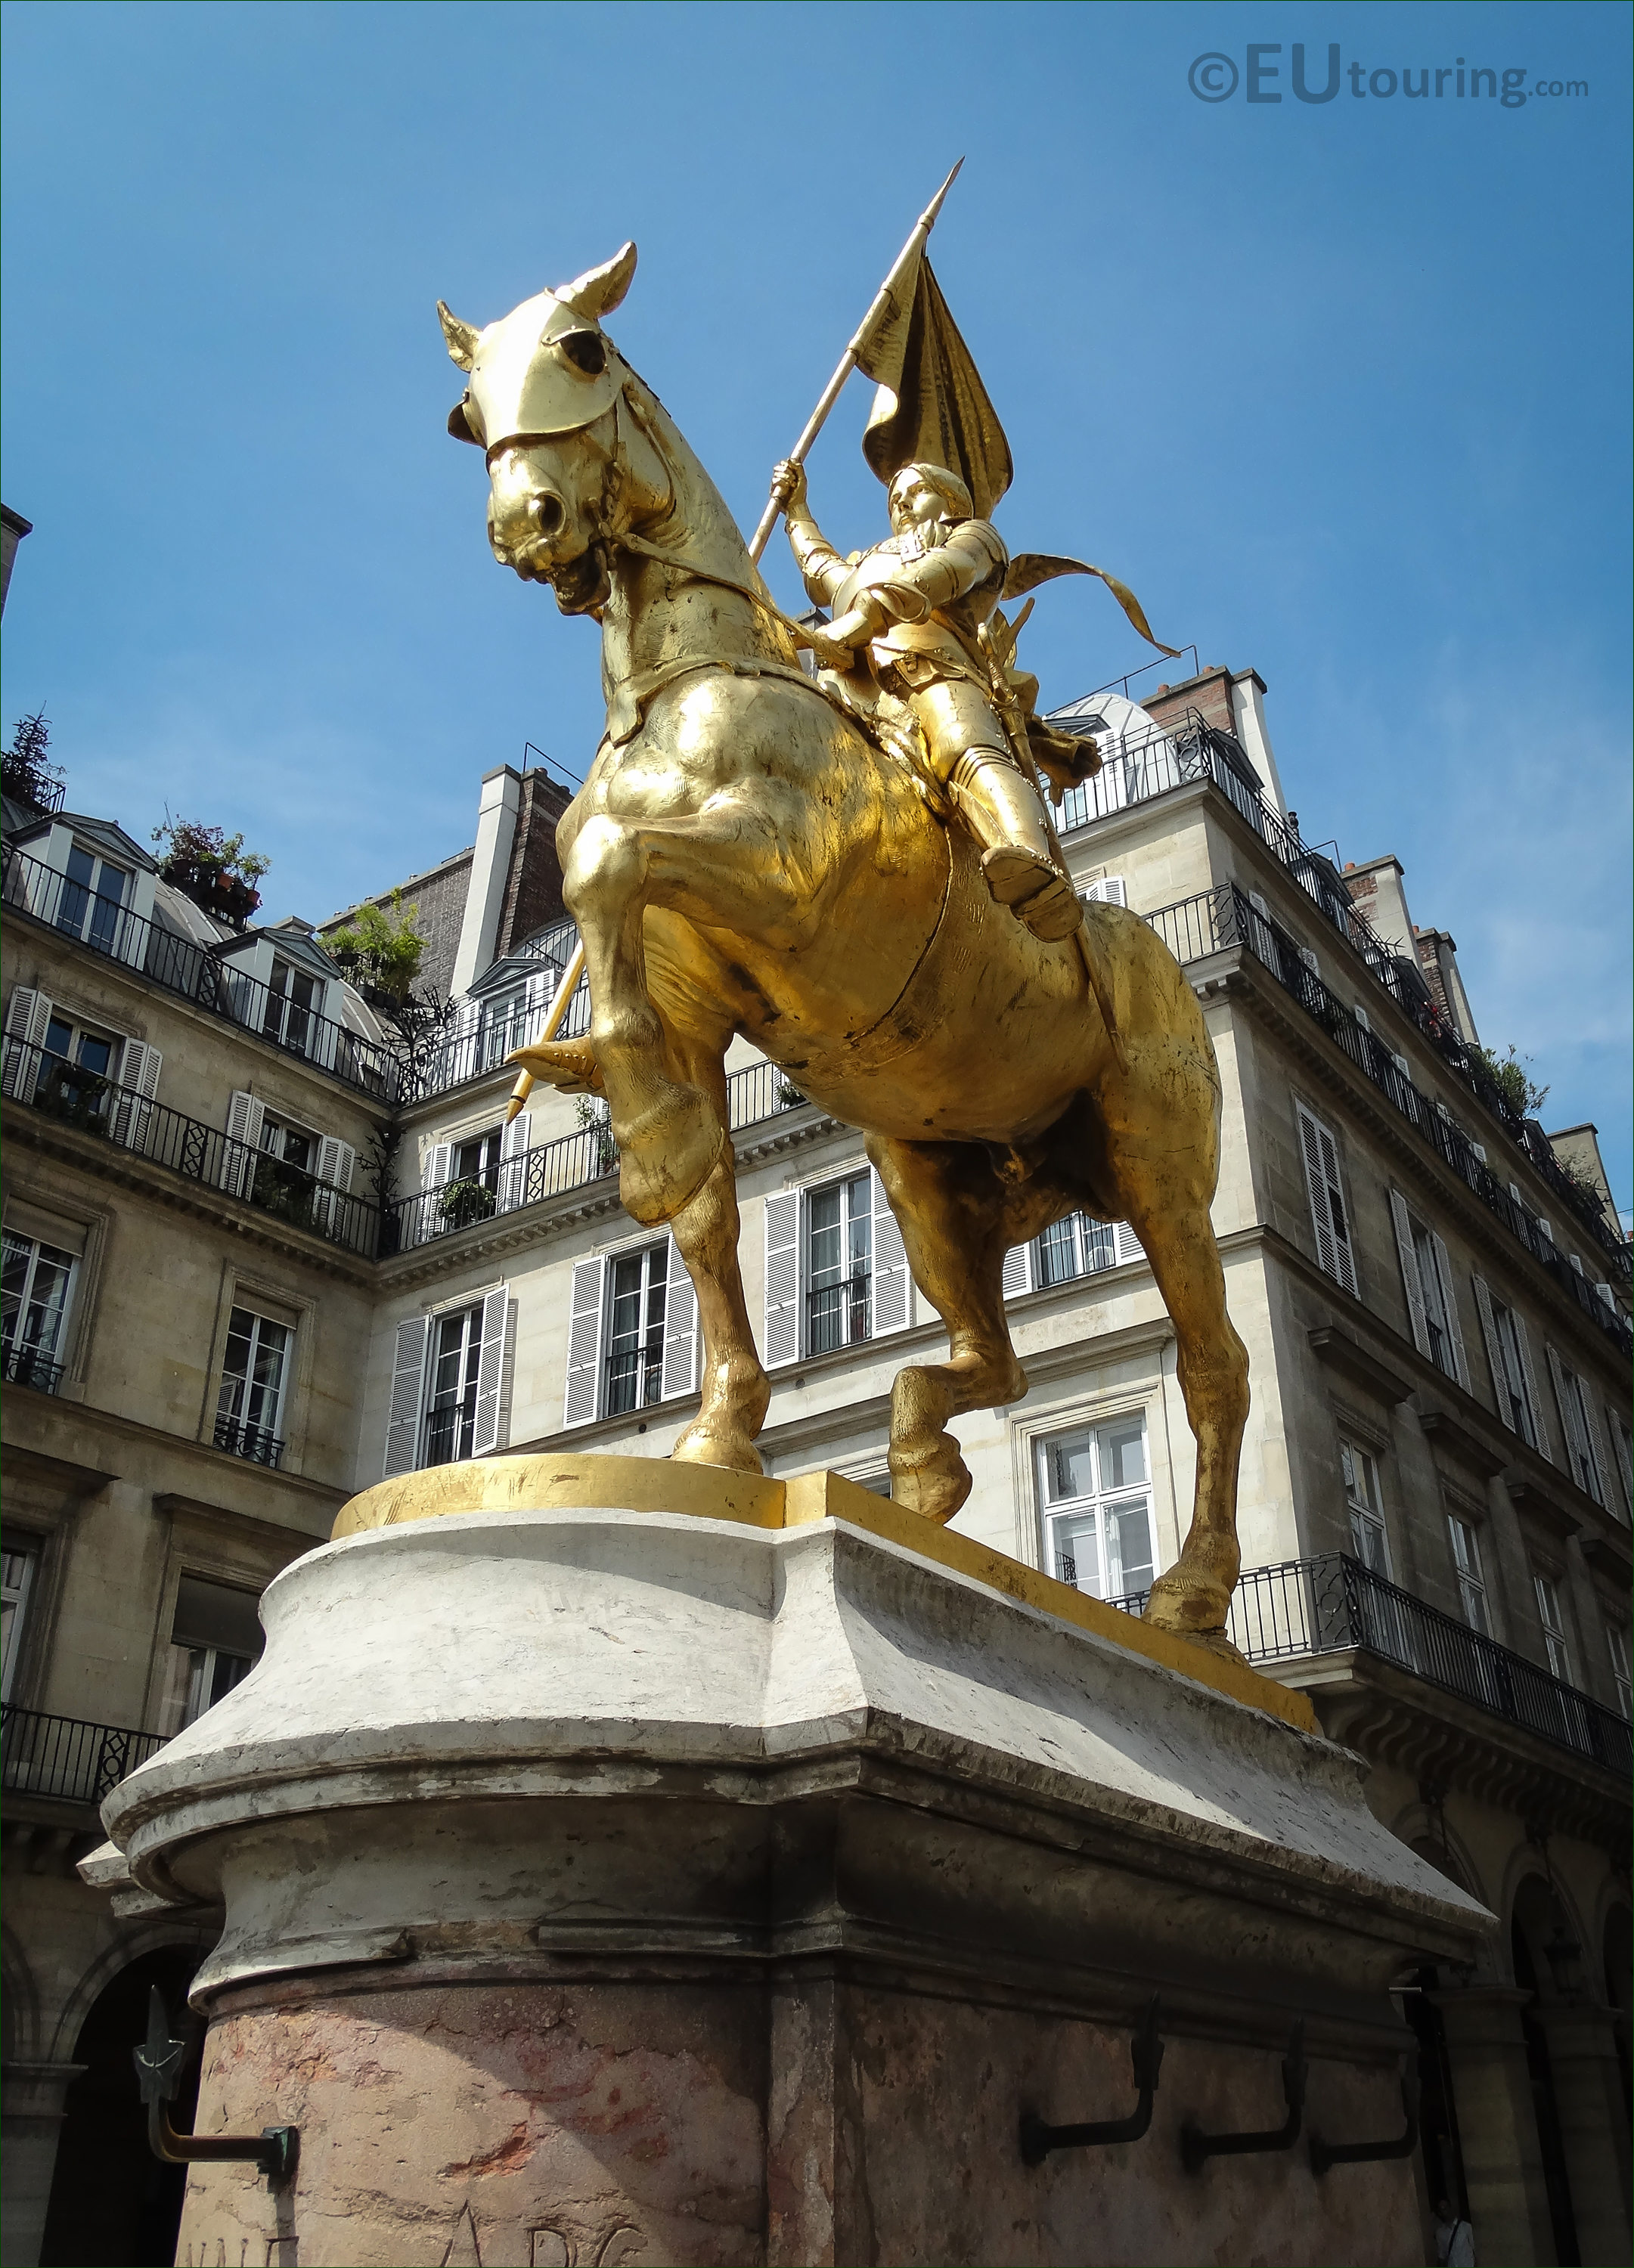 Photos Of Gilded Equestrian Statue Of Joan Of Arc In Paris